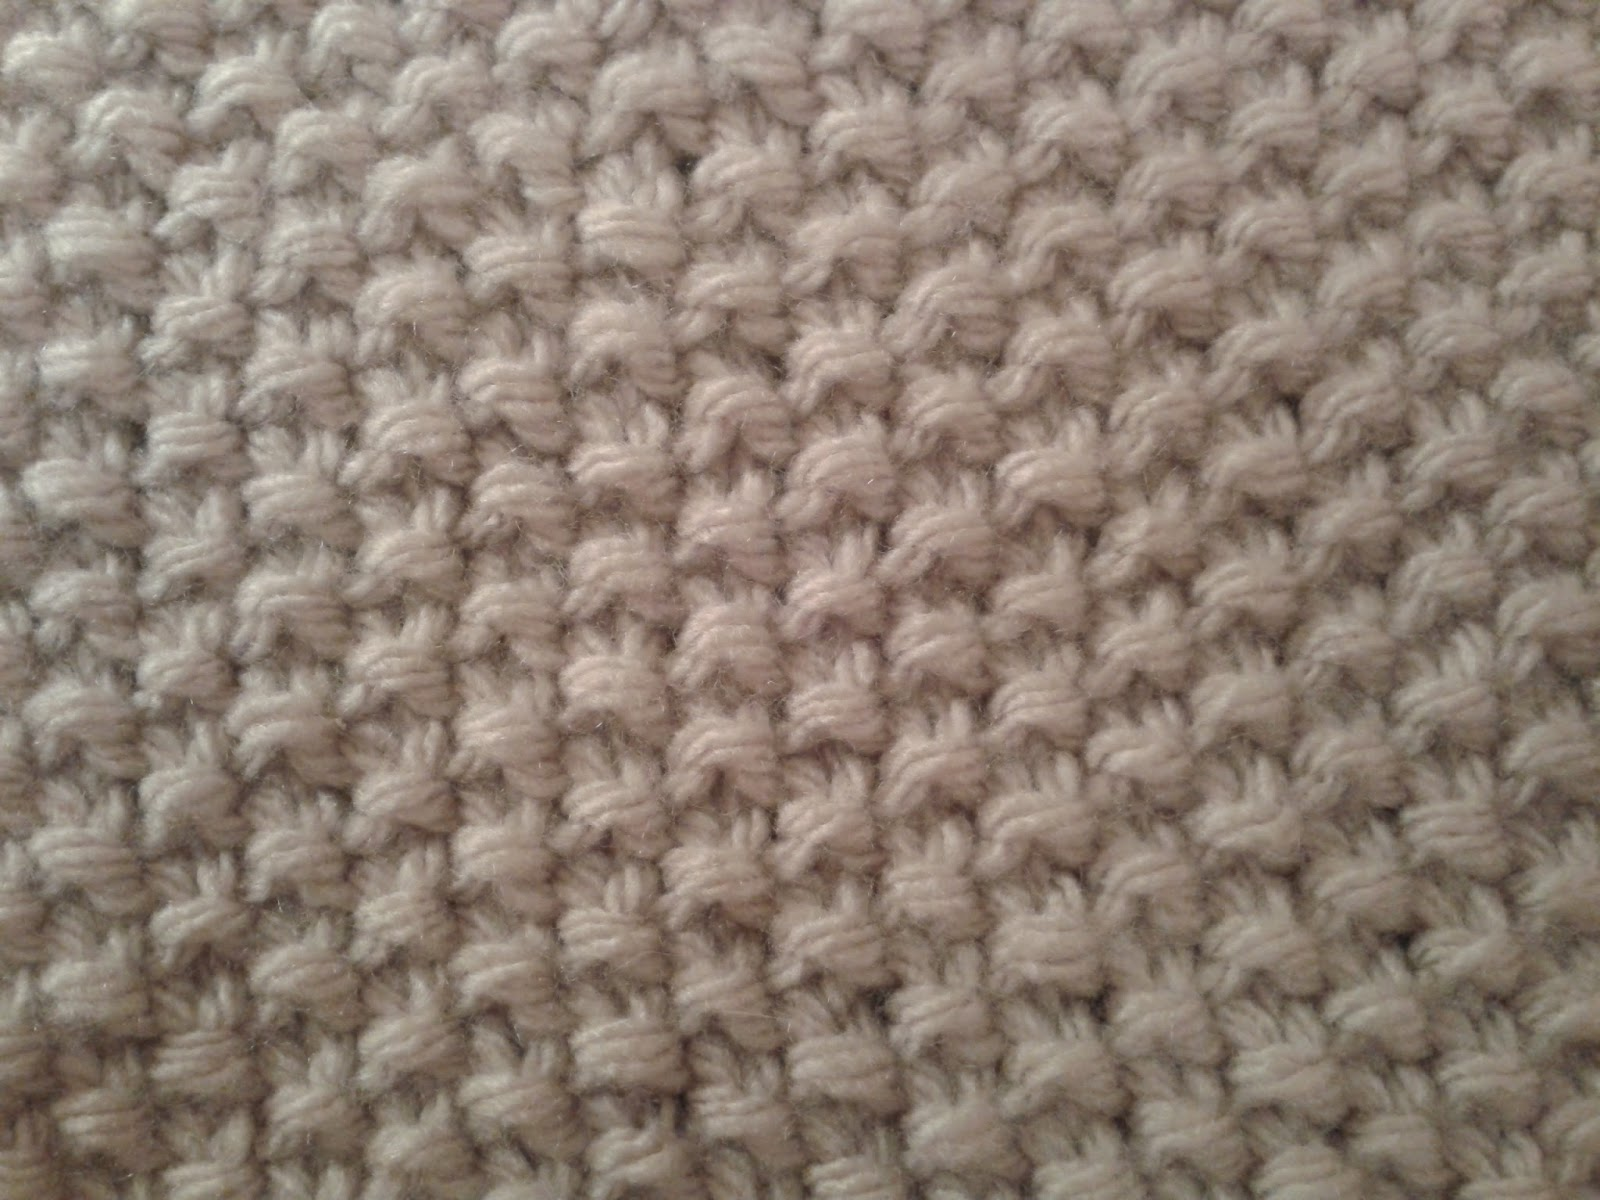 Knitting Stitches Seed Stitch : LK401. The Seed Stitch